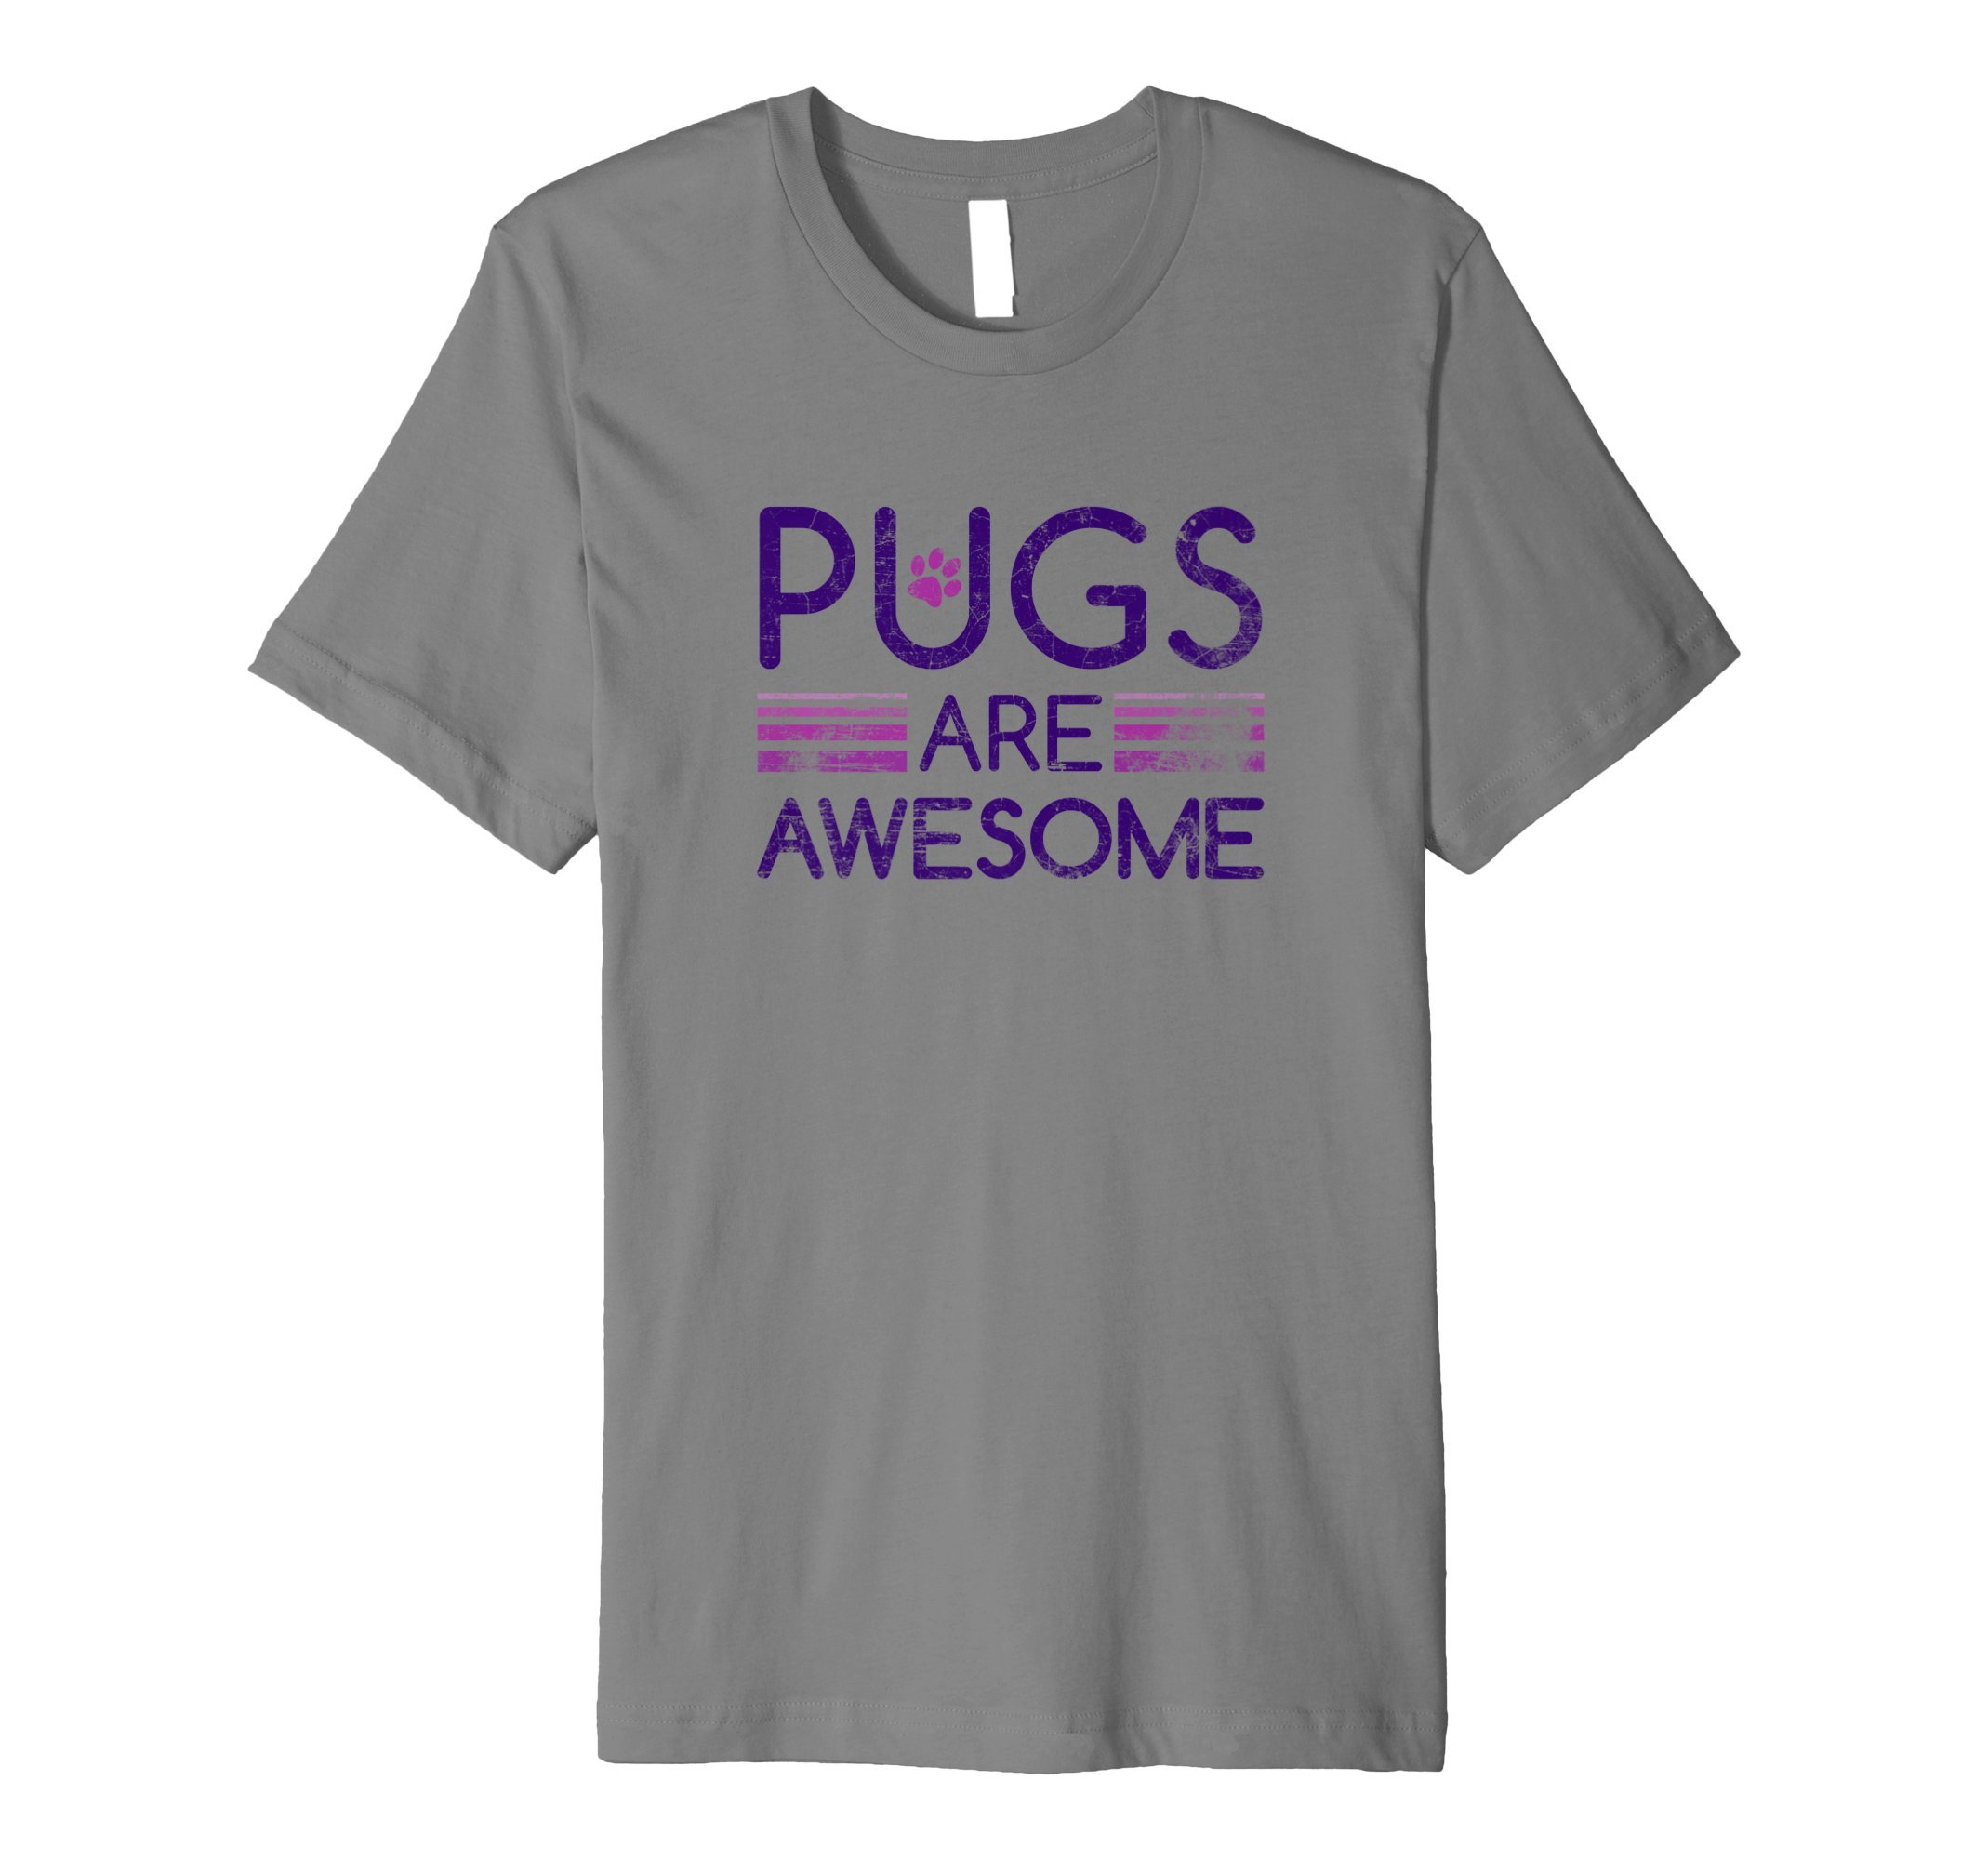 Pugs Are Awesome TShirt Cute Pet Dog Lover Animal Paw Gifts by Steamer Tees (Image #1)